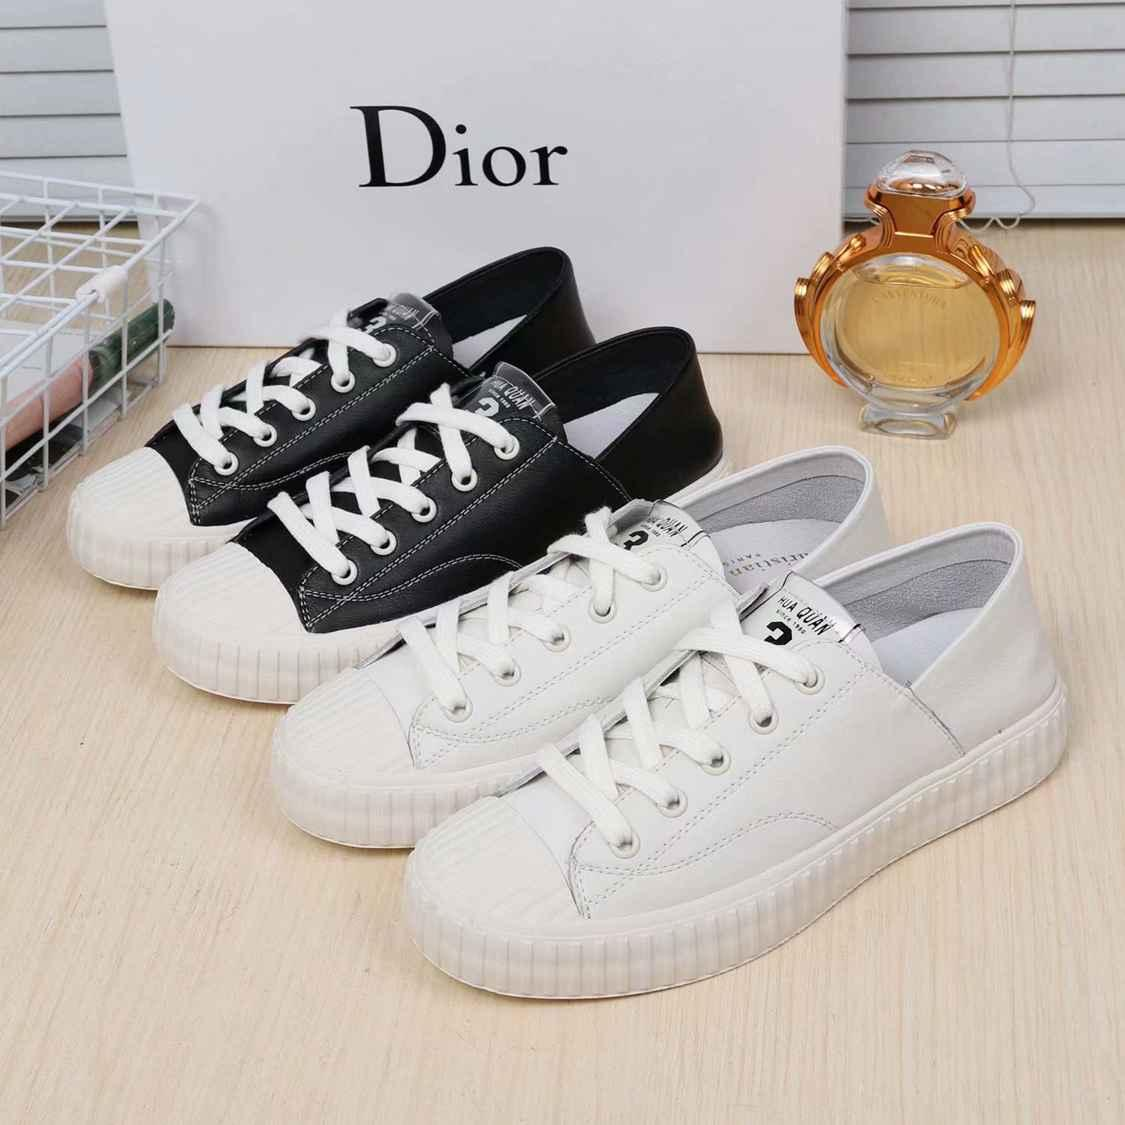 Women s Pumps Platform Loafers Shoes Classic Casual Shoes for Dog Sneak Embroidery Ladies Leather Tassel Low Heel